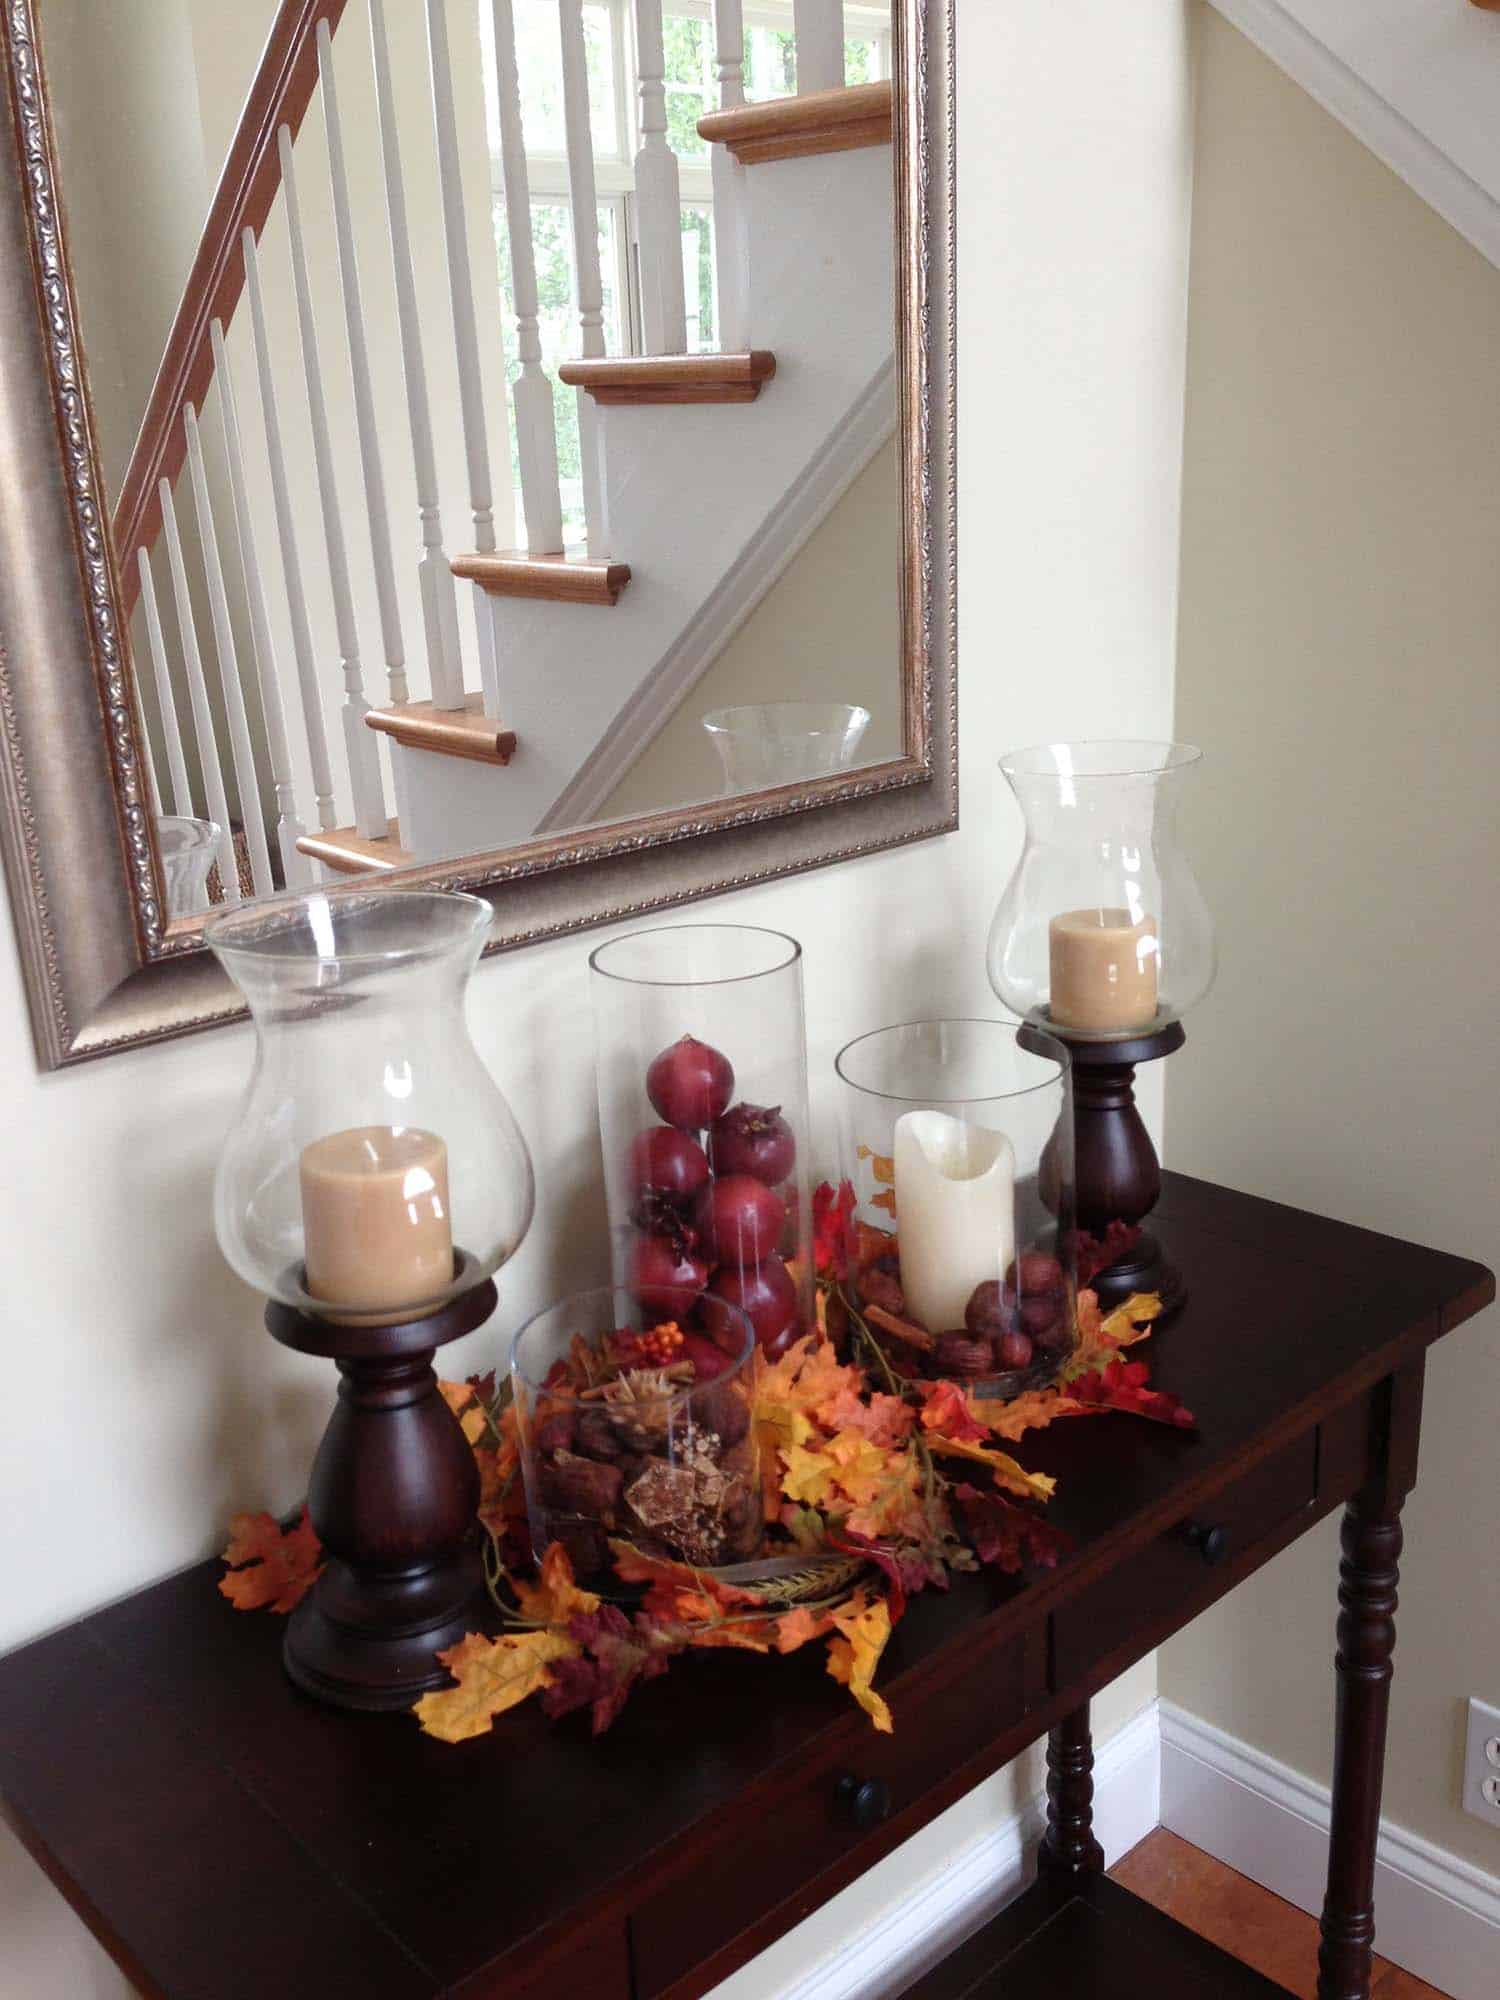 23 amazing ways to style your console table with fall decor. Black Bedroom Furniture Sets. Home Design Ideas